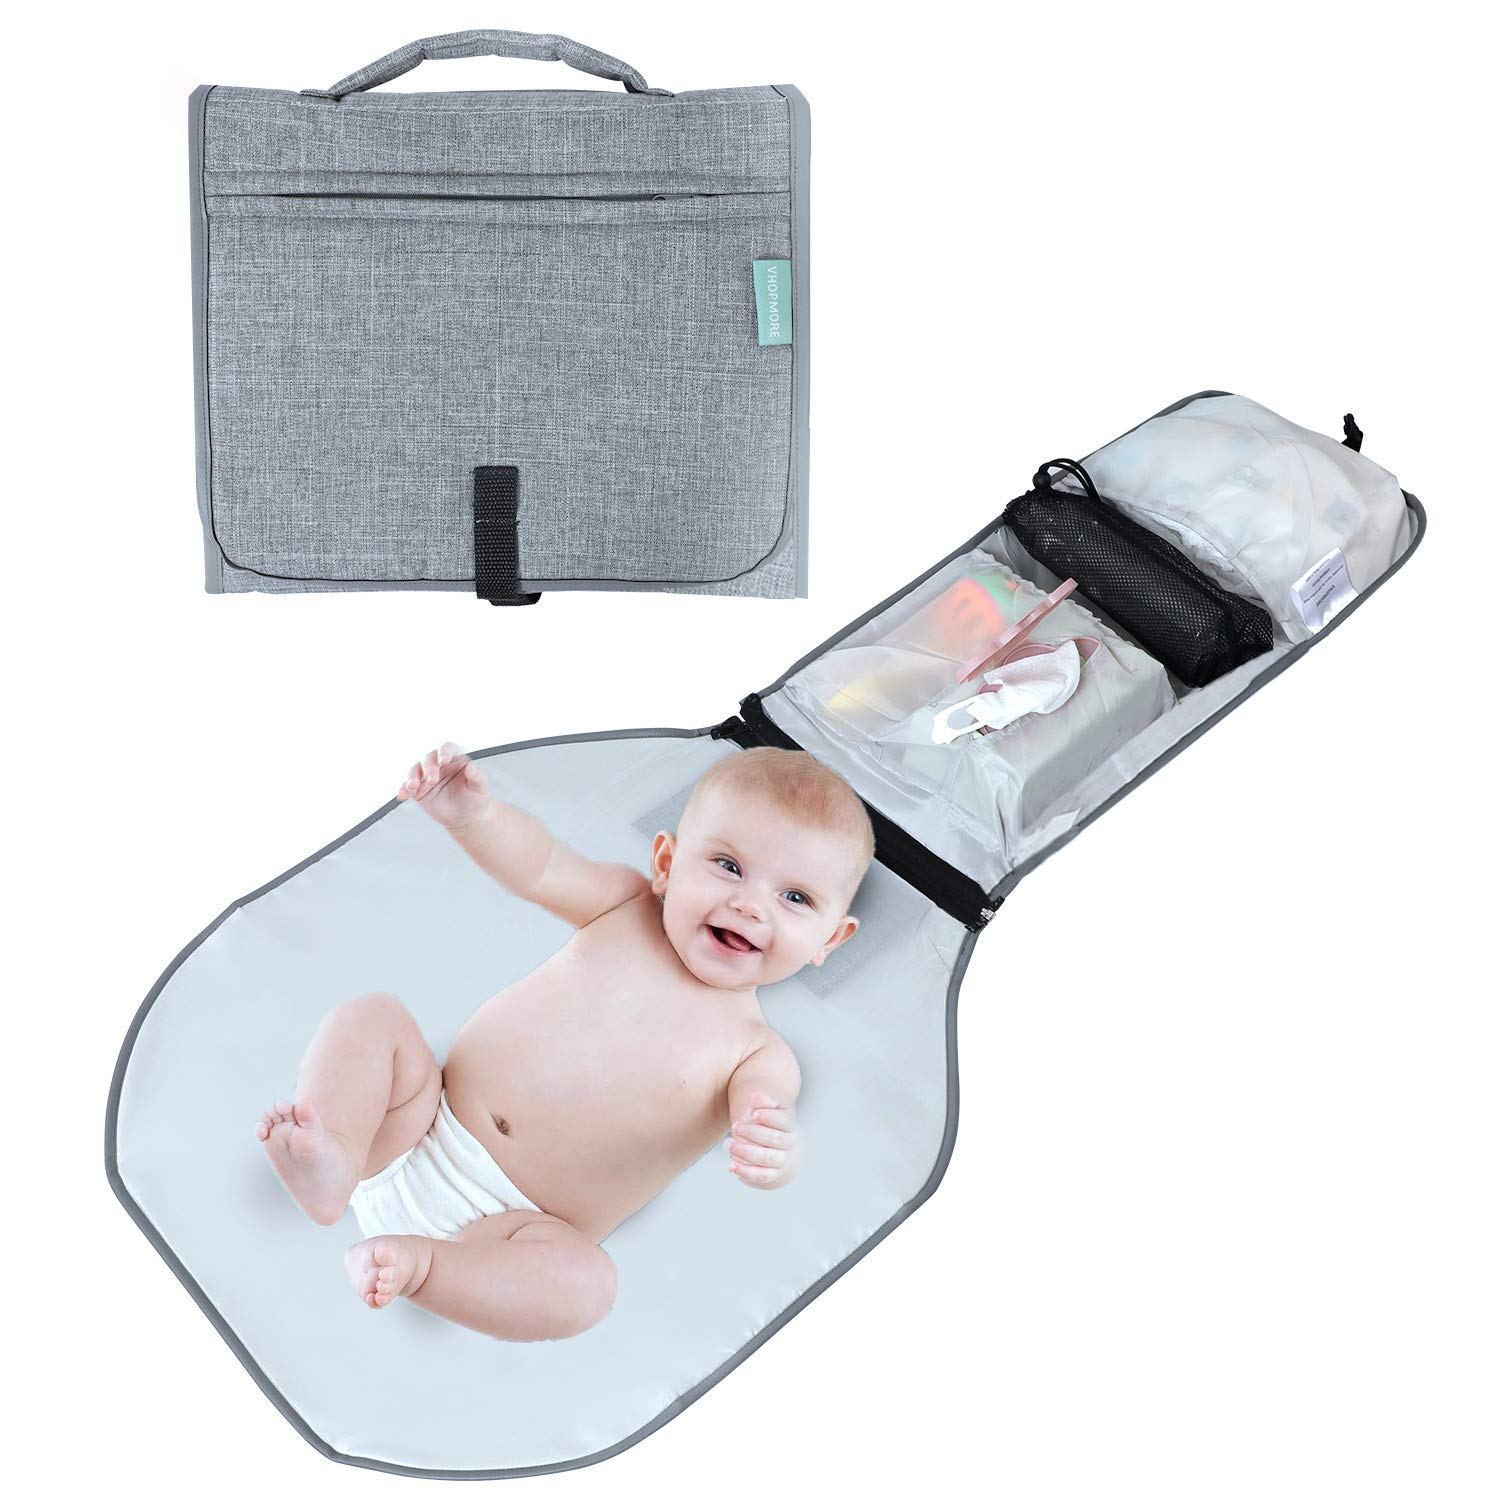 Baby Portable Changing Pad, VHOPMORE Detachable Waterproof Changing Mat with Head Cushion and Pockets, Baby Travel Diaper Bag Changing Station Kit Baby Shower Gift for Newborn Boy & Girl